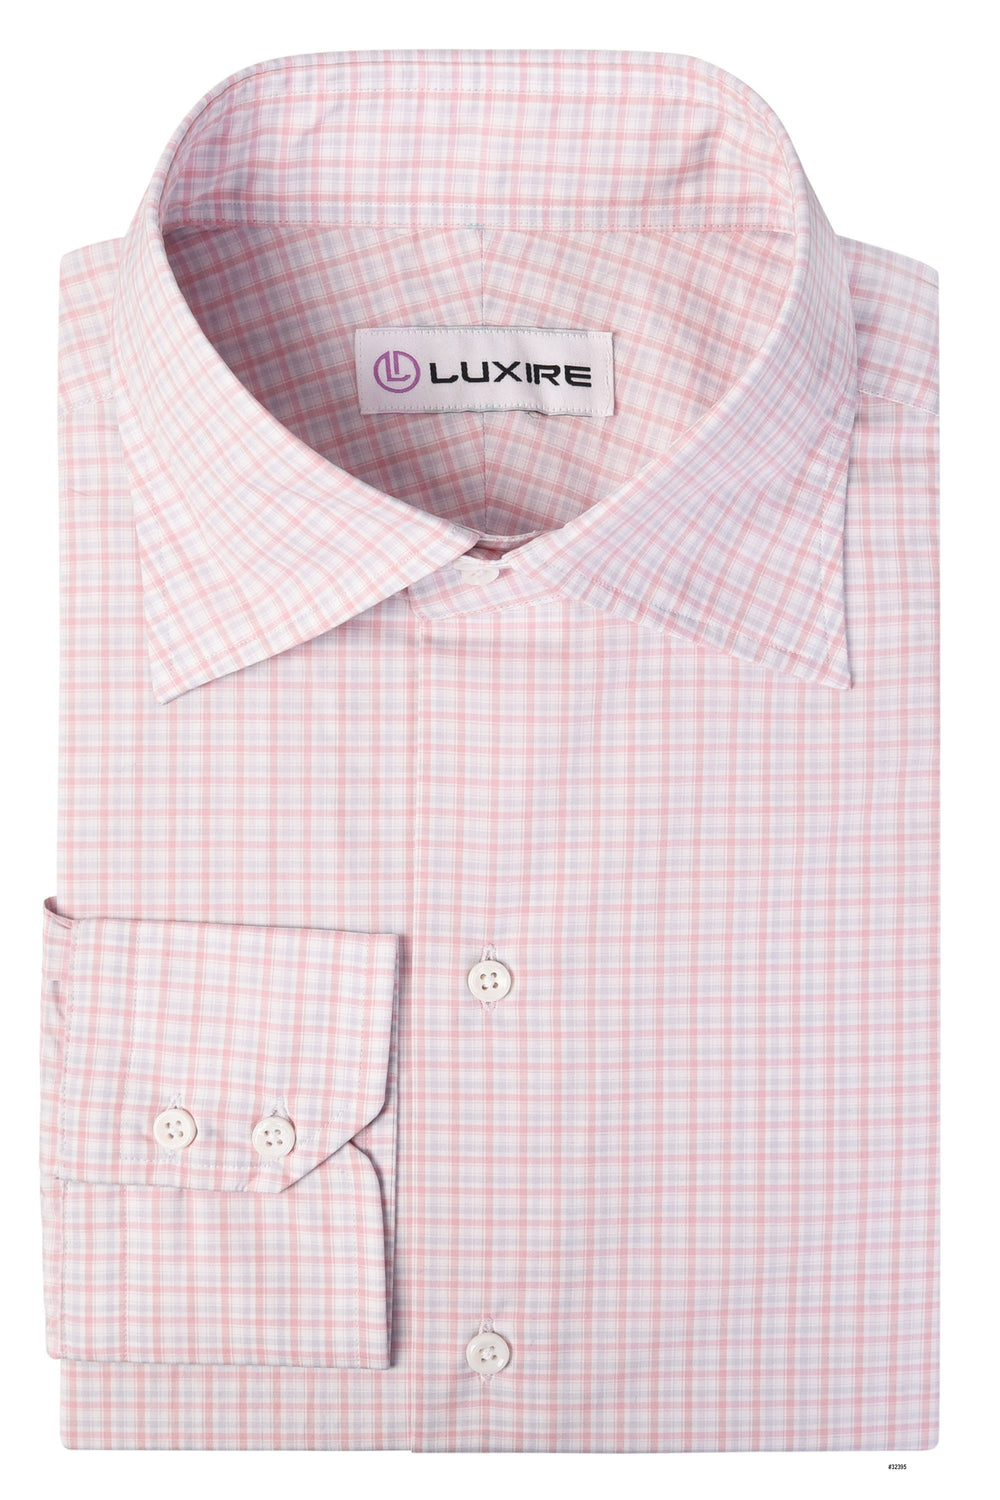 Alumo Salmon Pink and Grey Mini Tartan Checks